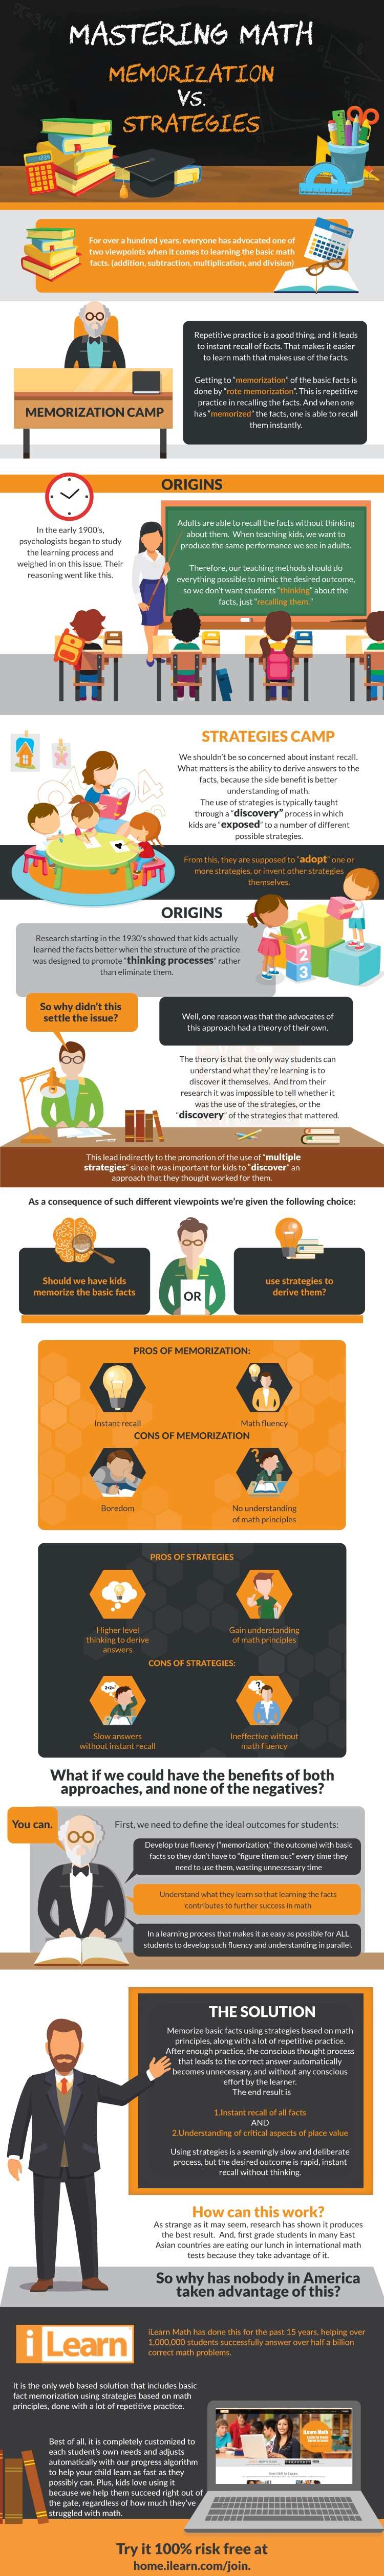 Mastering Math: Memorization vs Strategies Infographic